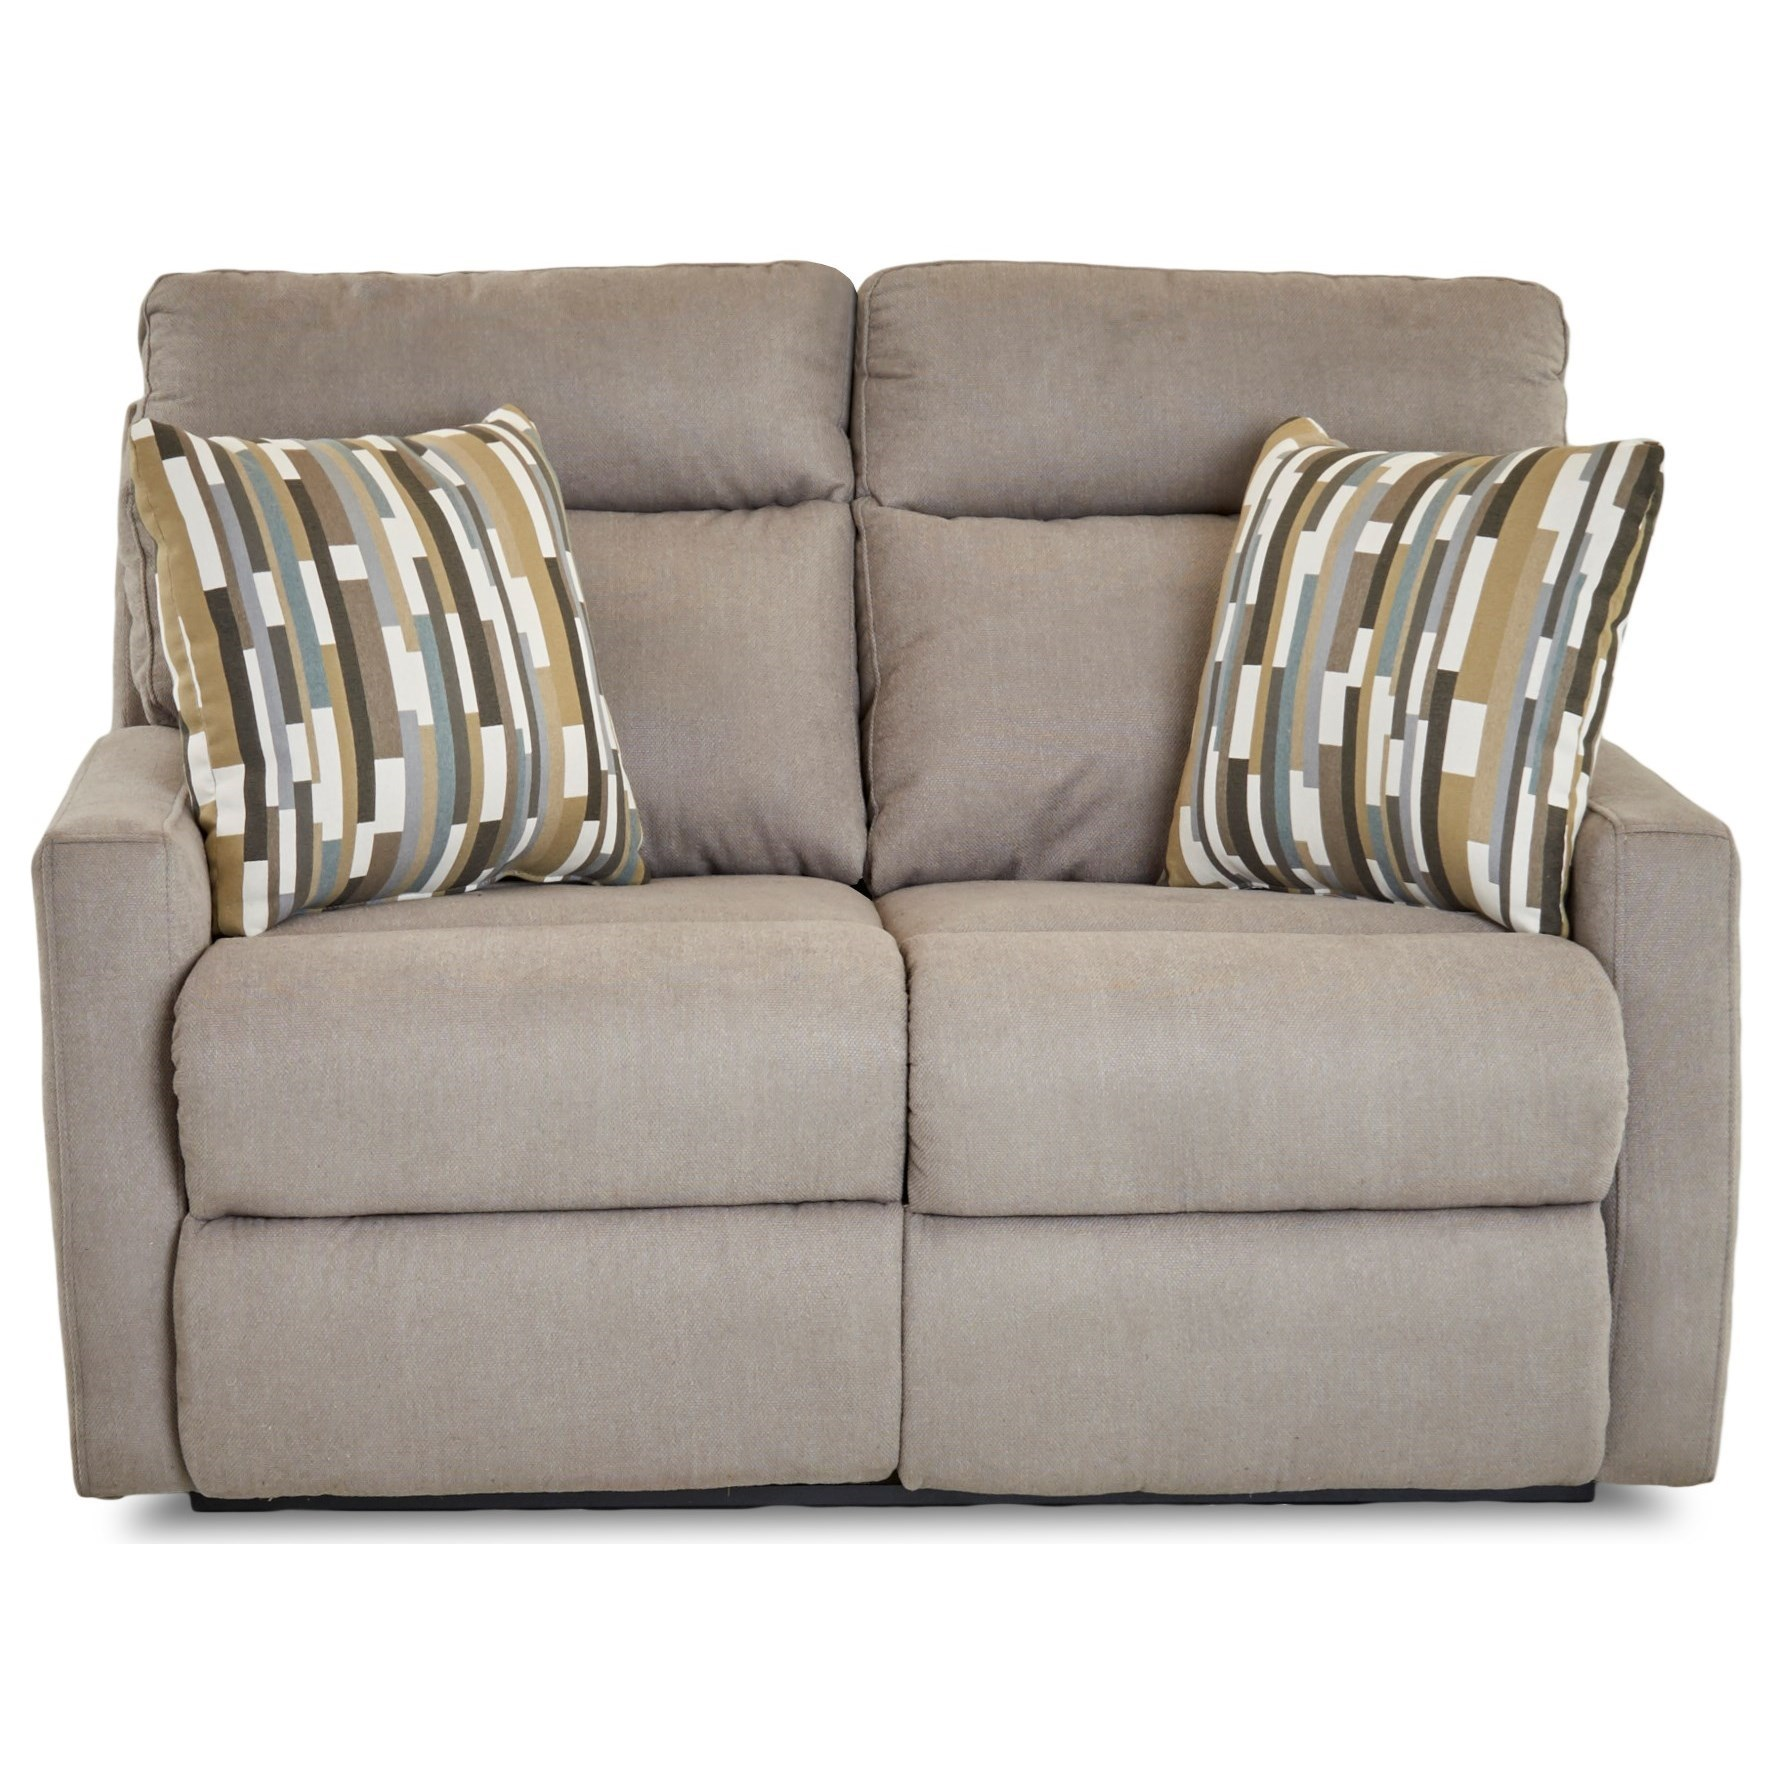 Power Reclining Loveseat with Track Arms and Pillows